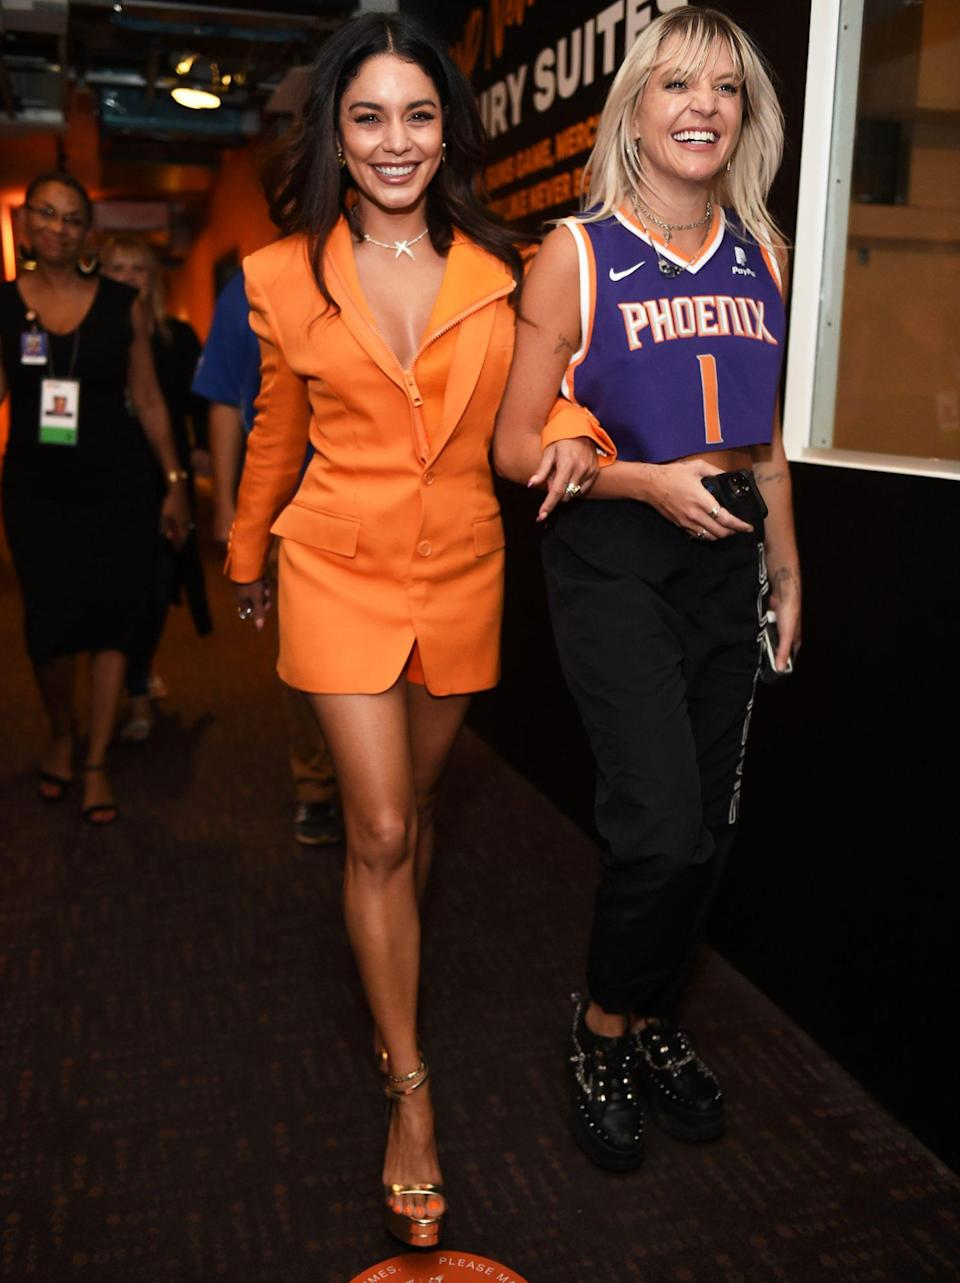 <p>Vanessa Hudgens is all smiles after performing the National Anthem for the Milwaukee Bucks vs. Phoenix Suns game in Arizona.</p>